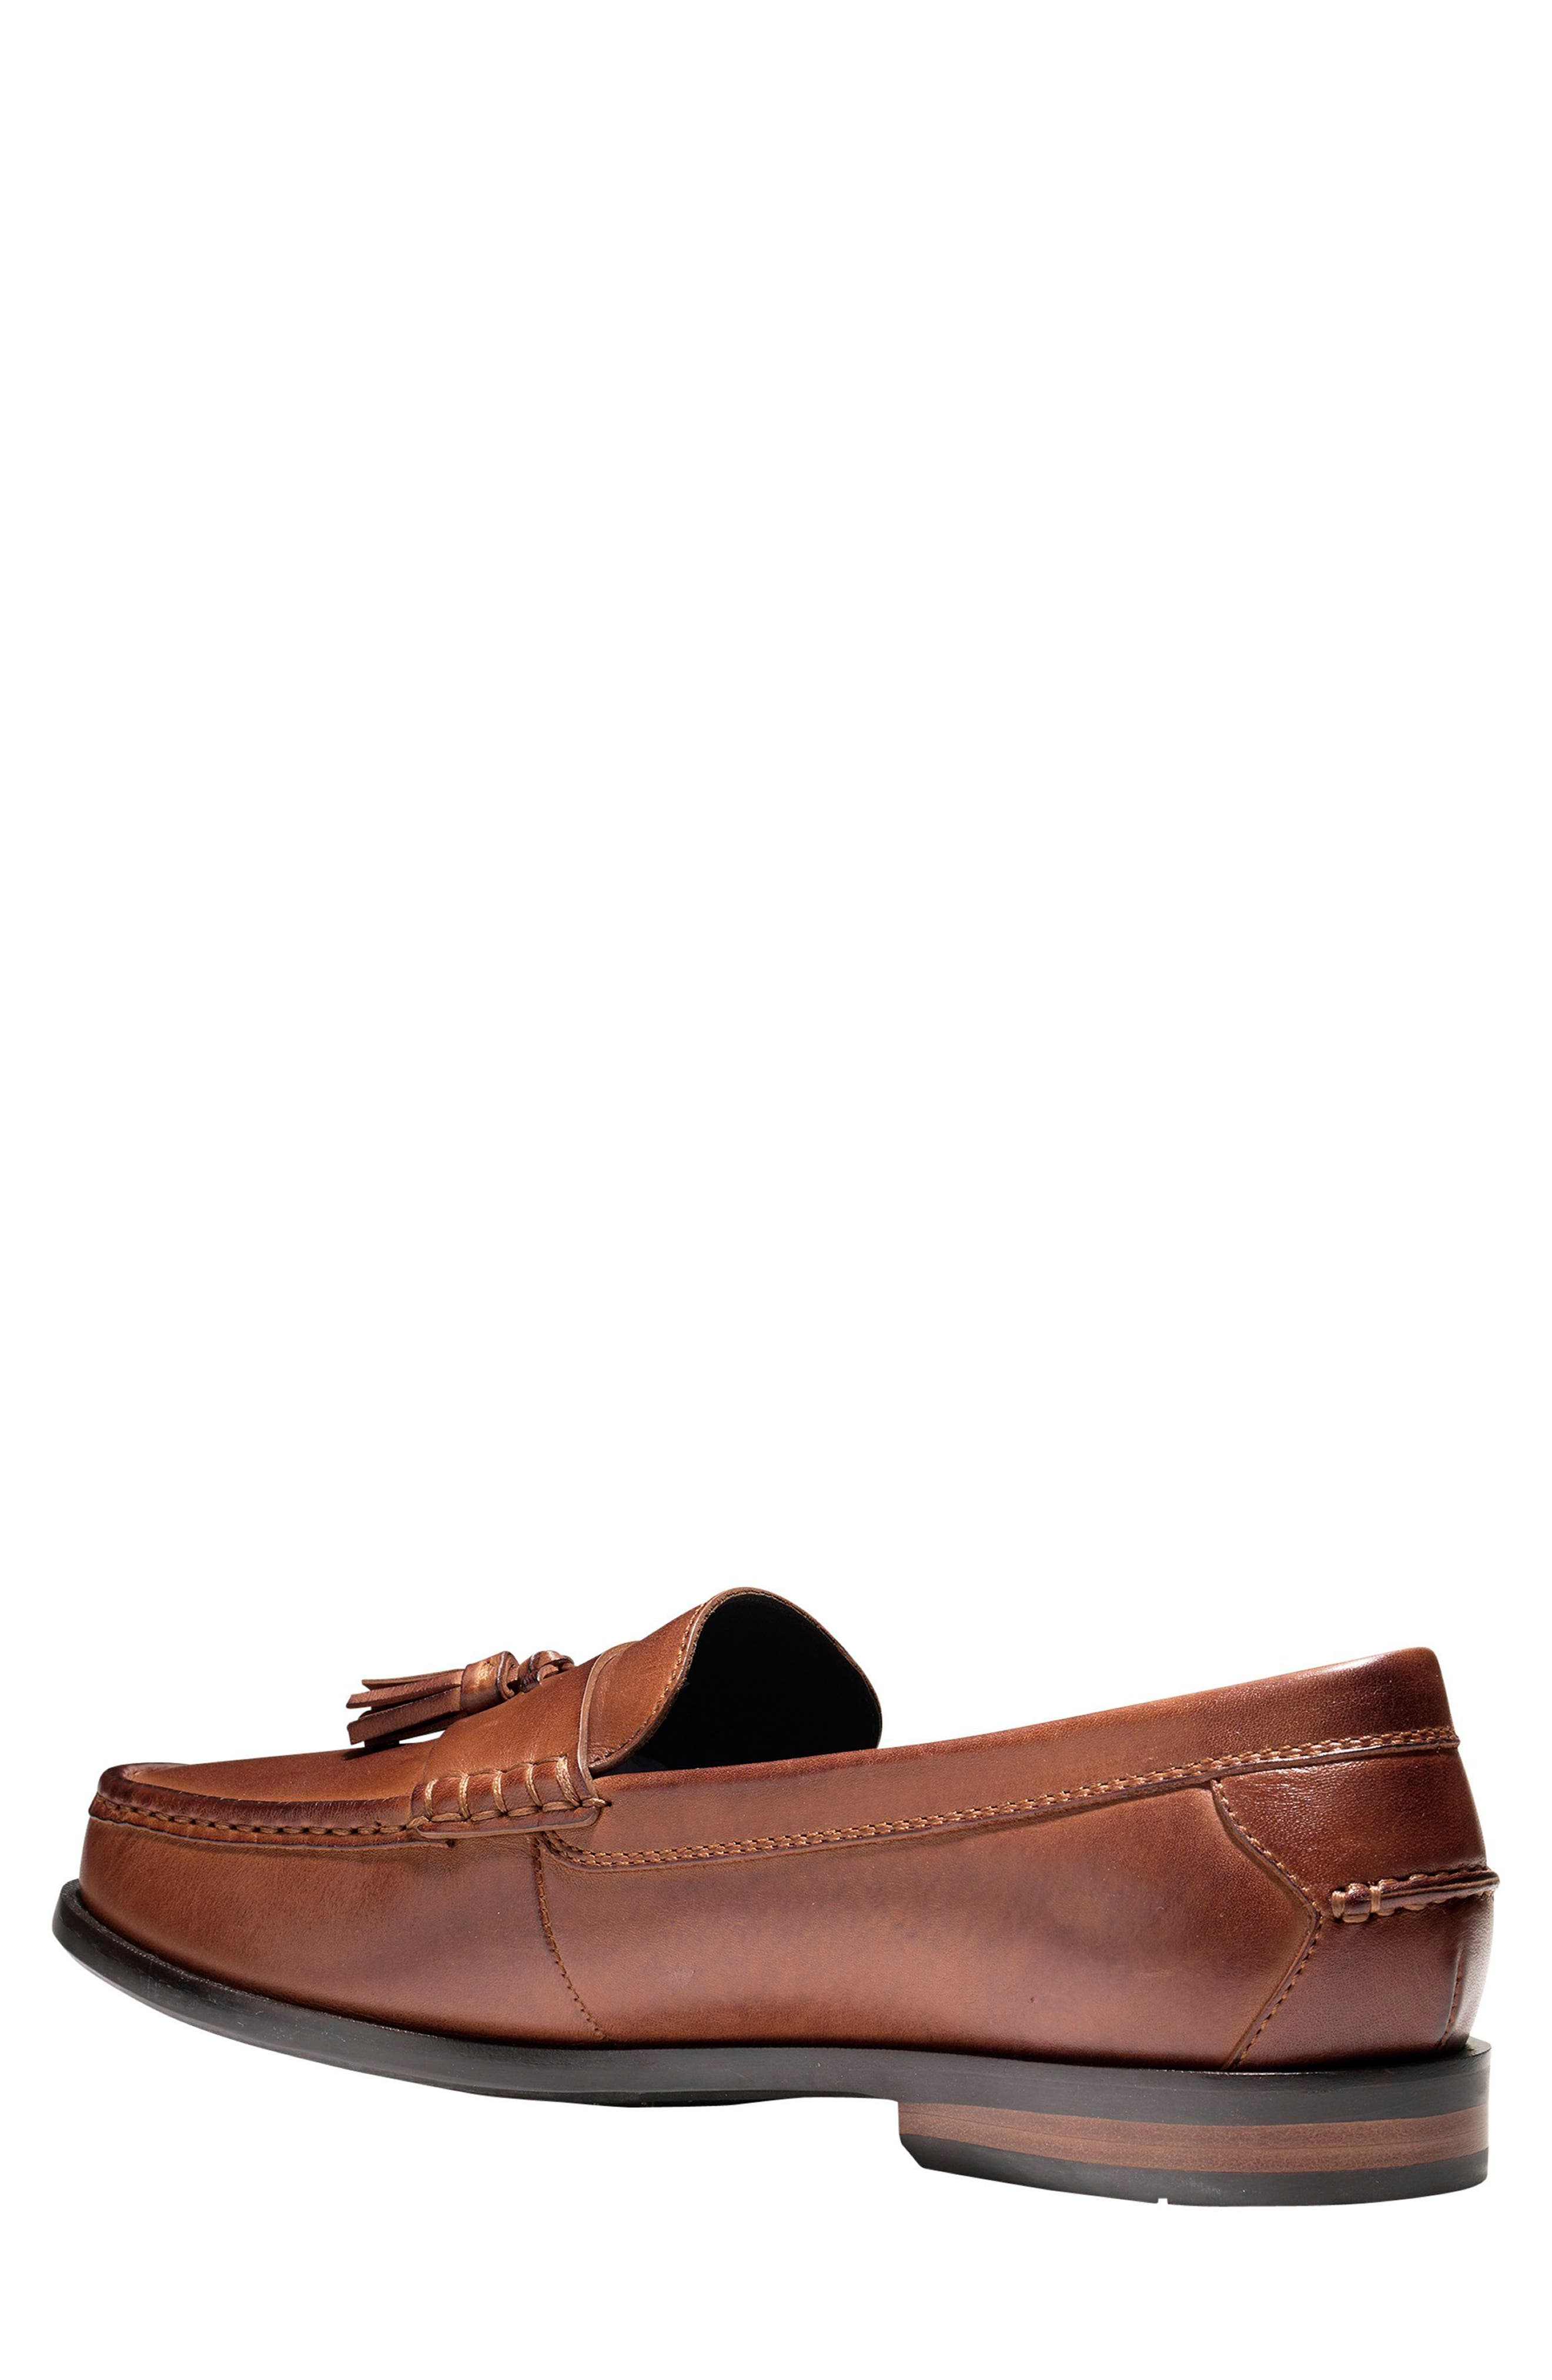 Alternate Image 2  - Cole Haan Pinch Friday Tassel Loafer (Men)